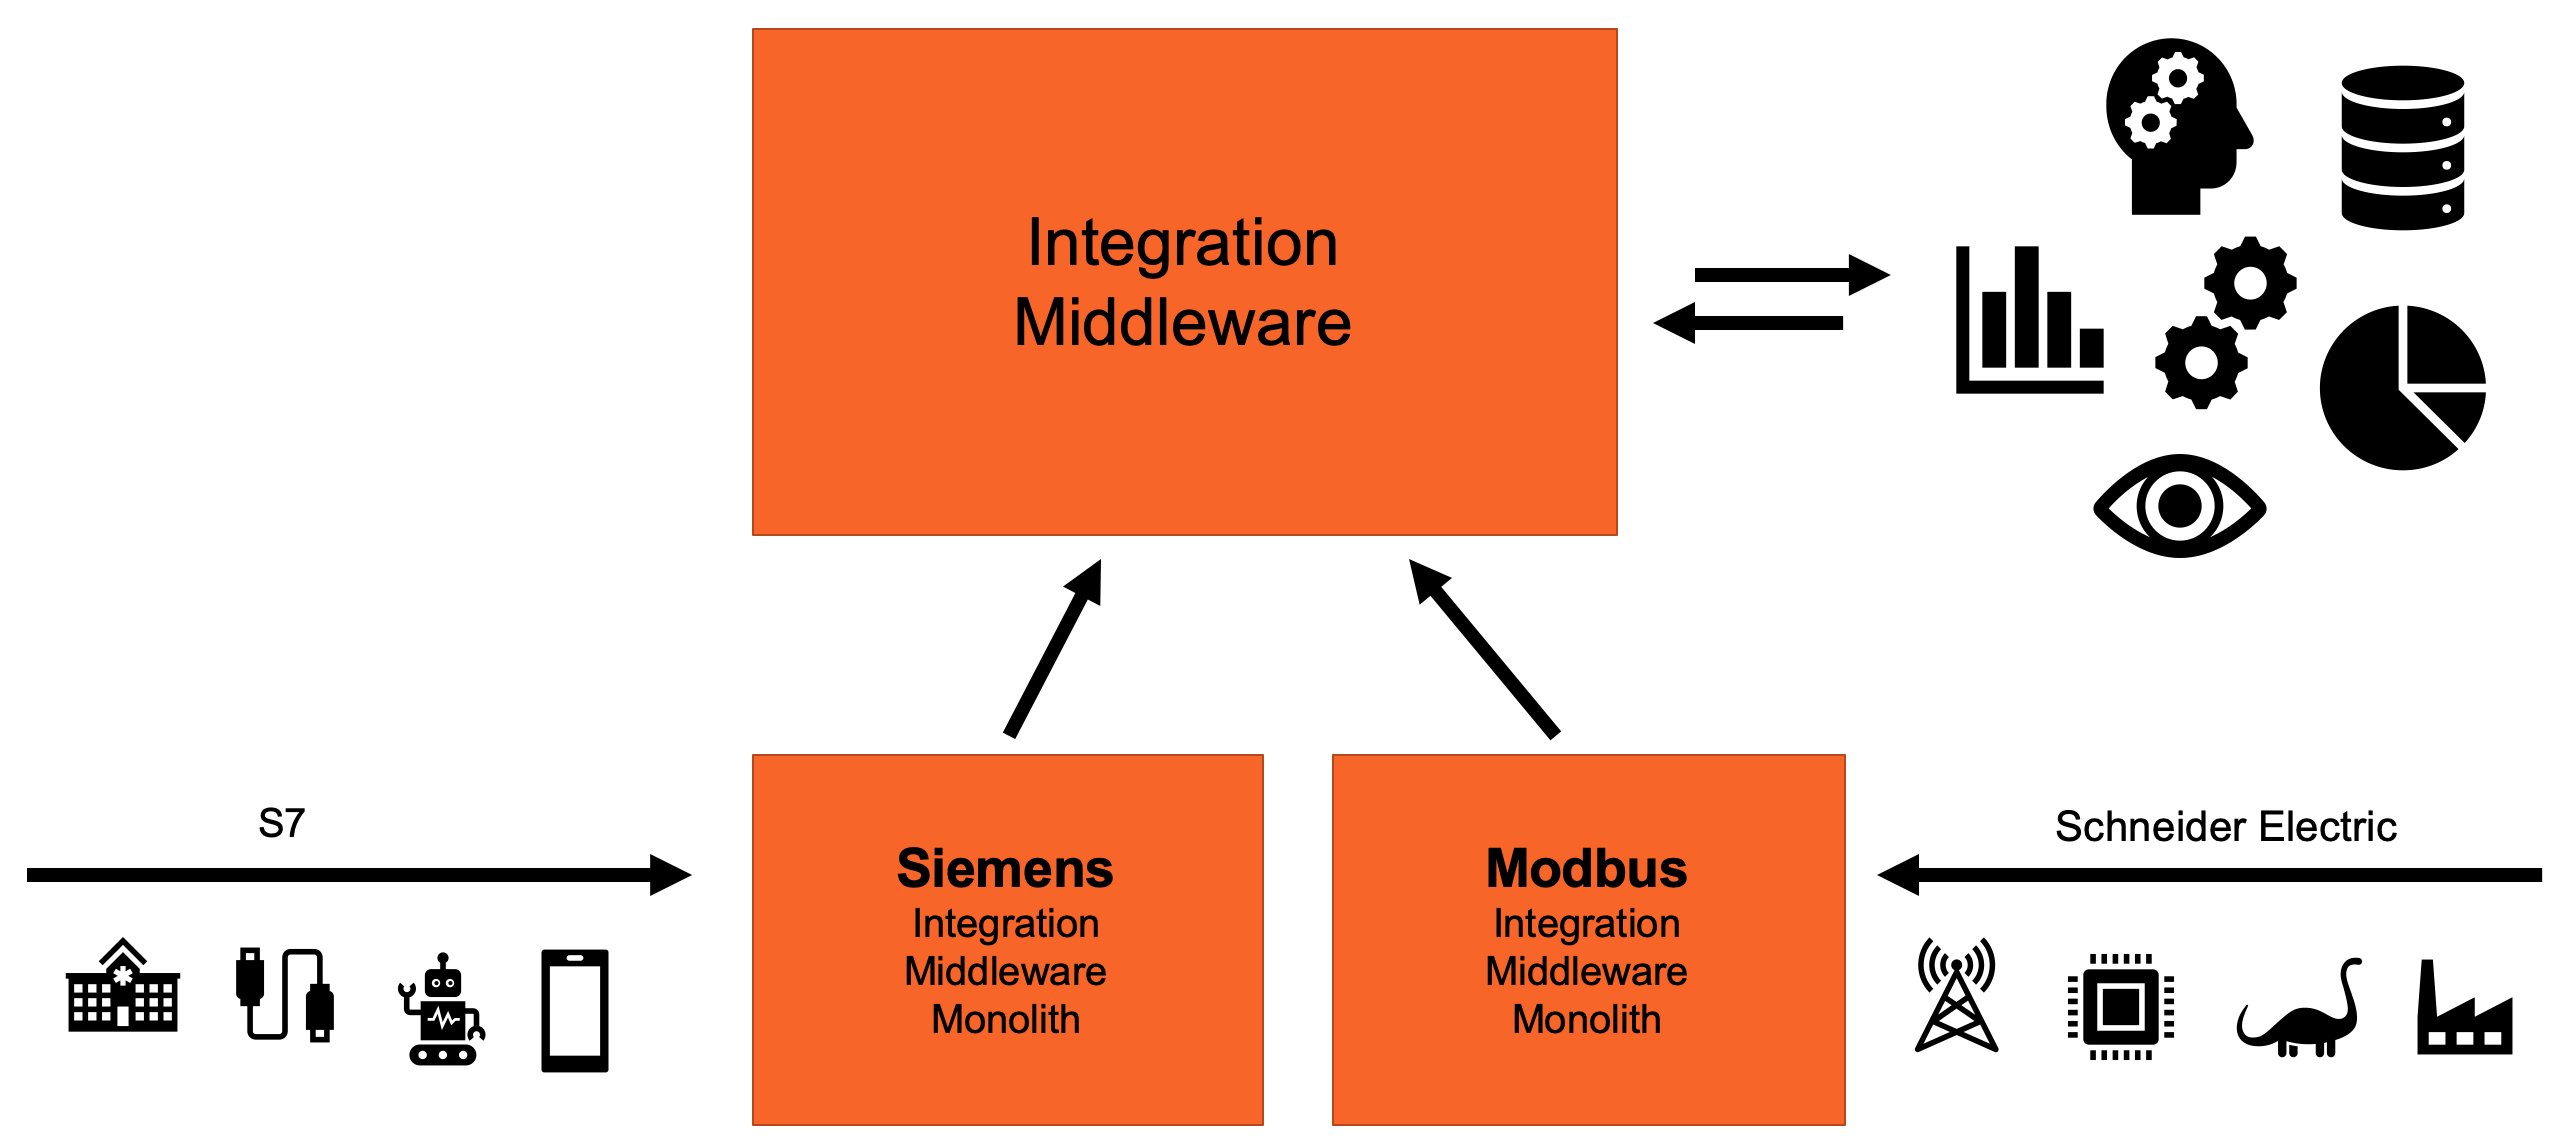 Legacy IIoT Integration Architecture